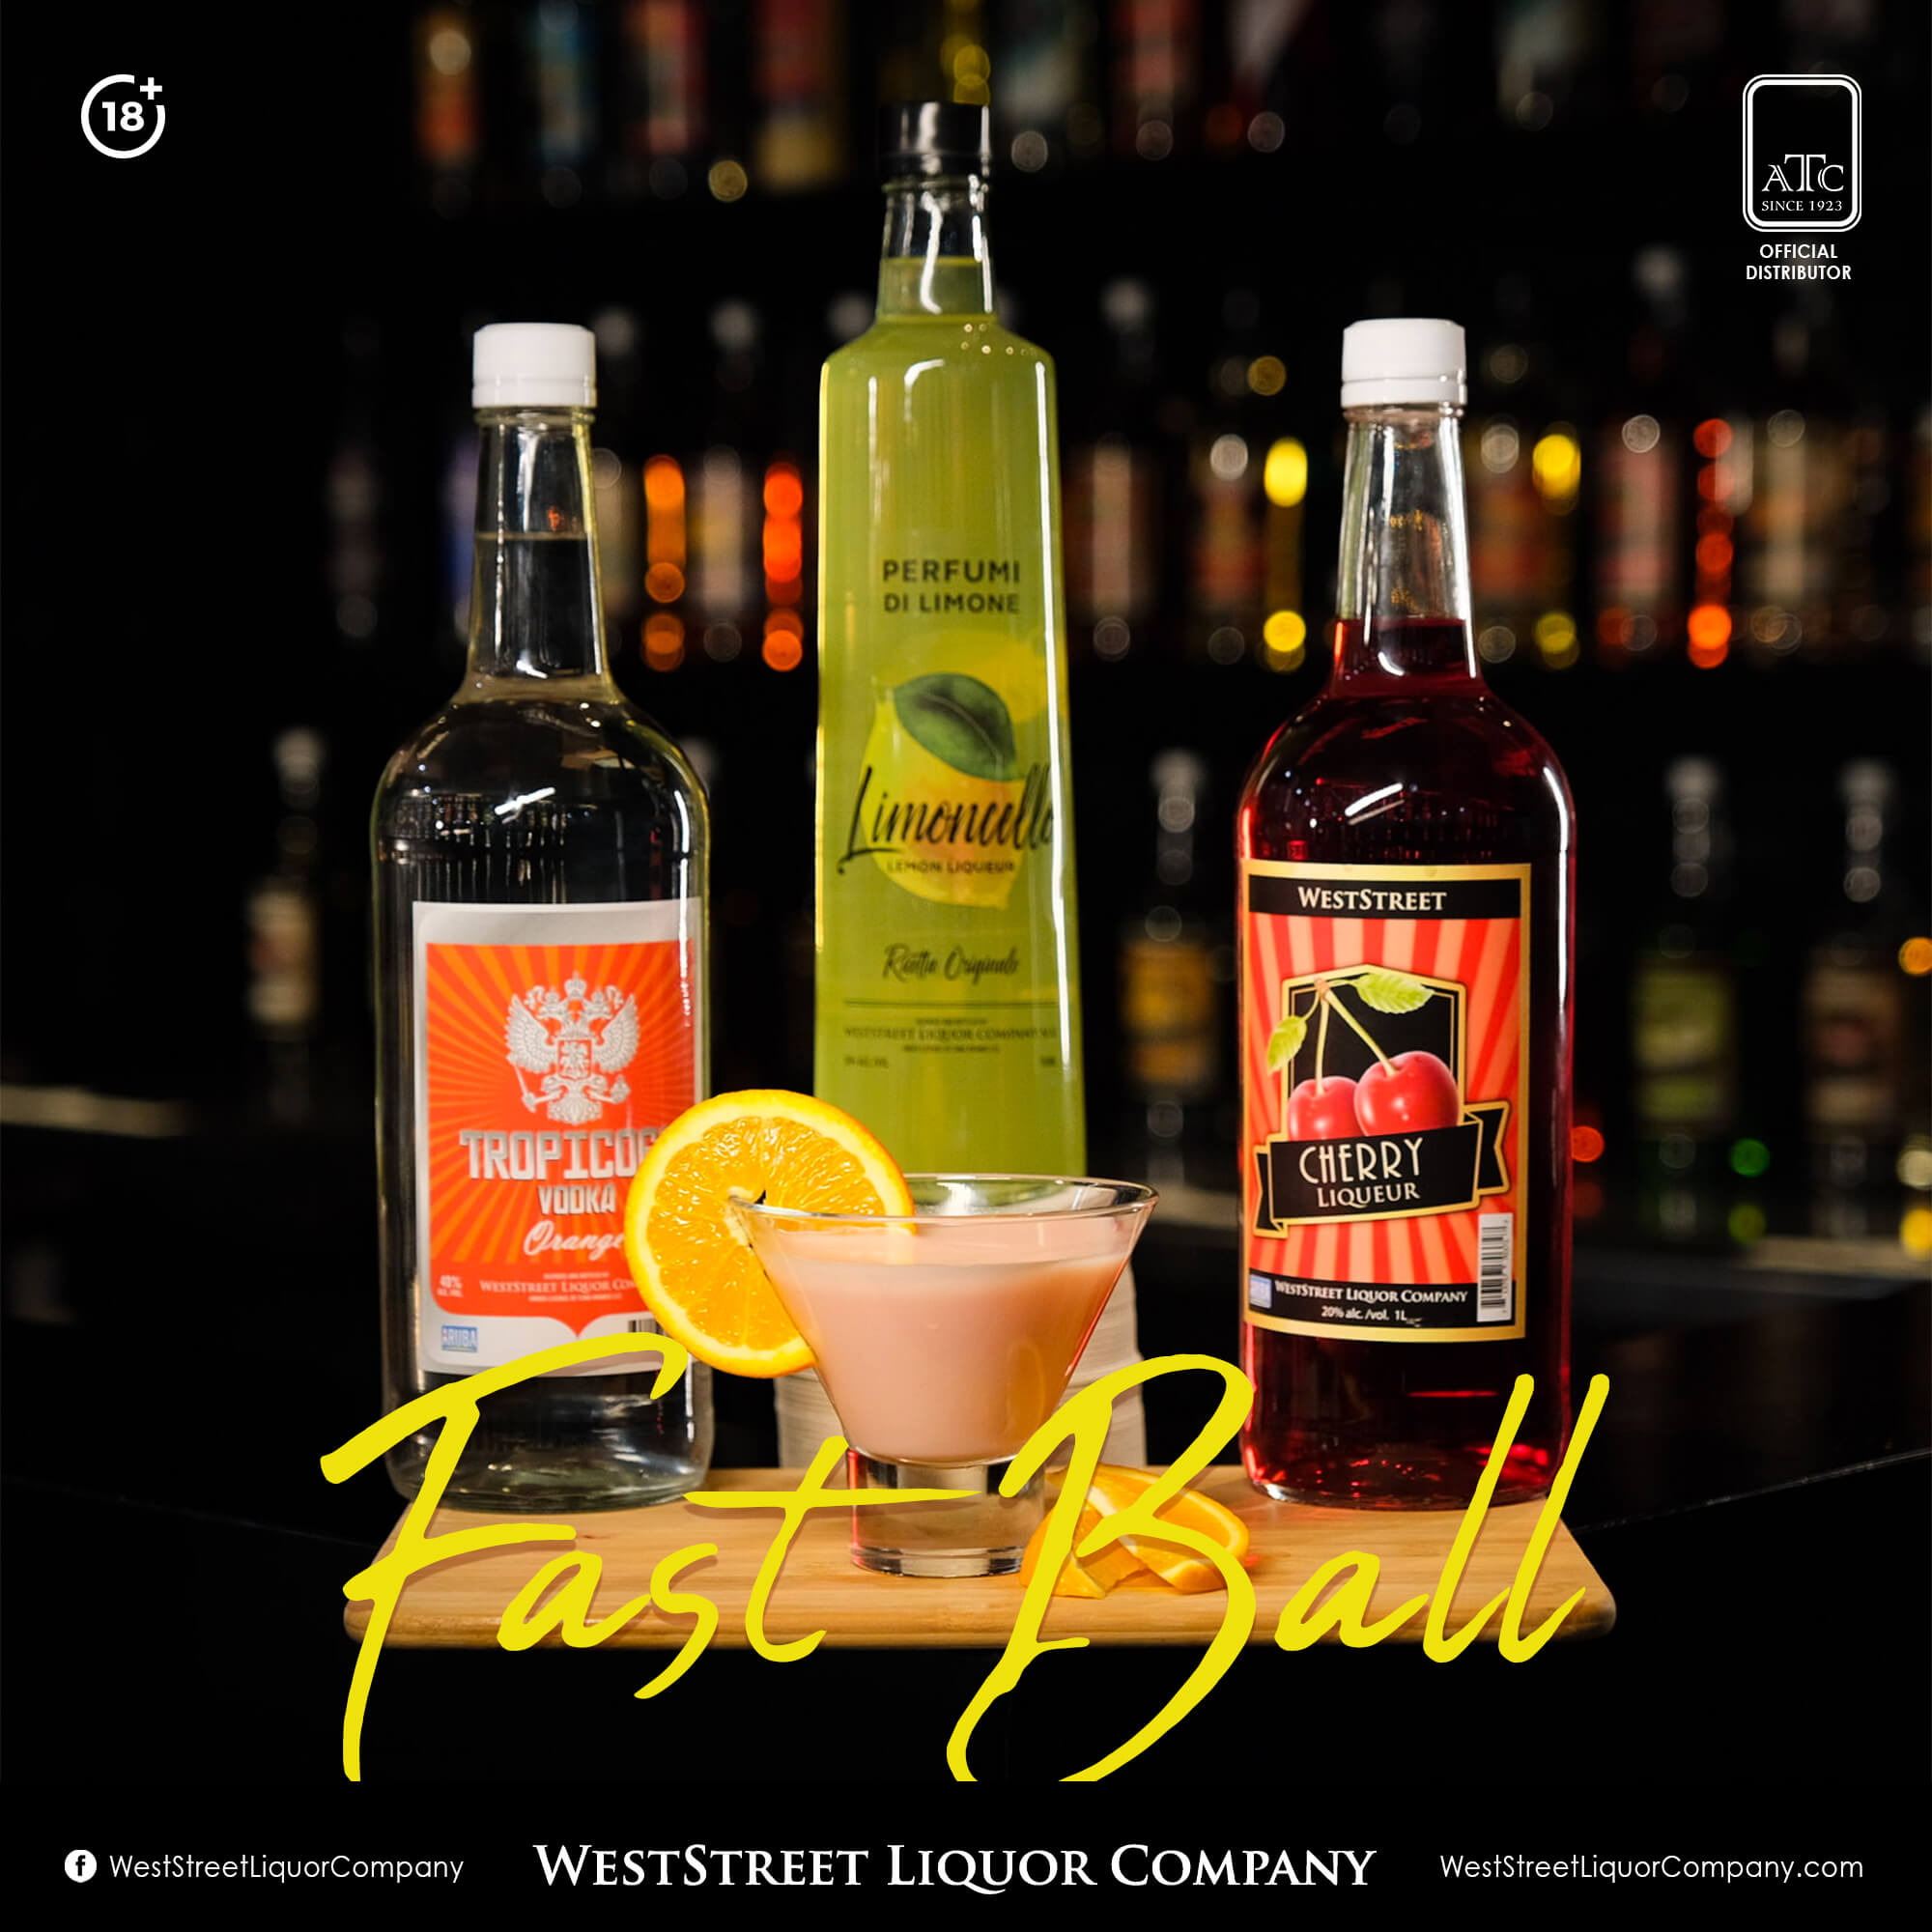 https://weststreetliquorcompany.com/wp-content/uploads/2020/09/CocktailPackages-Name-FastBall-1.jpg